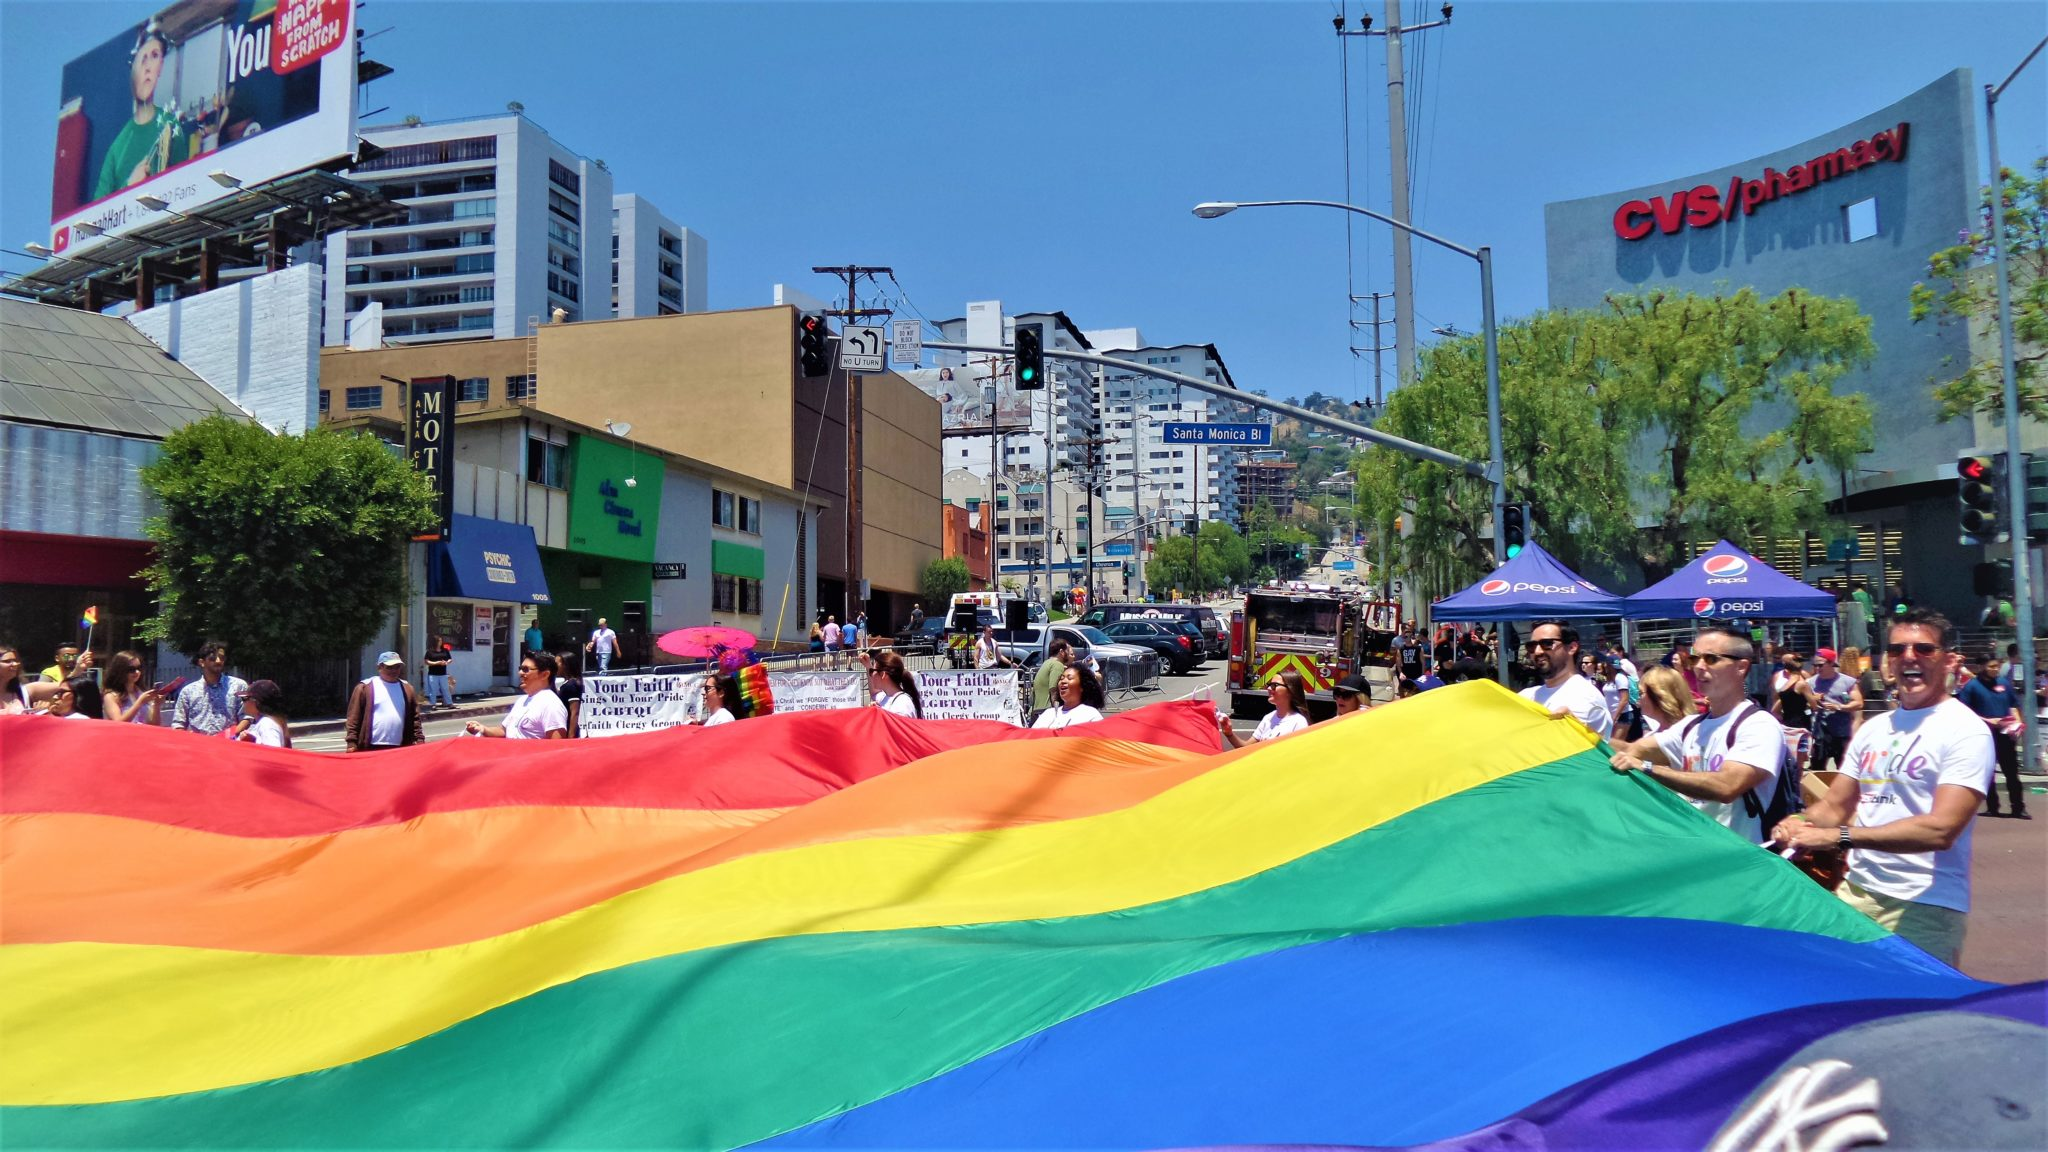 Large rainbow flag, LA Pride parade, los angeles, california